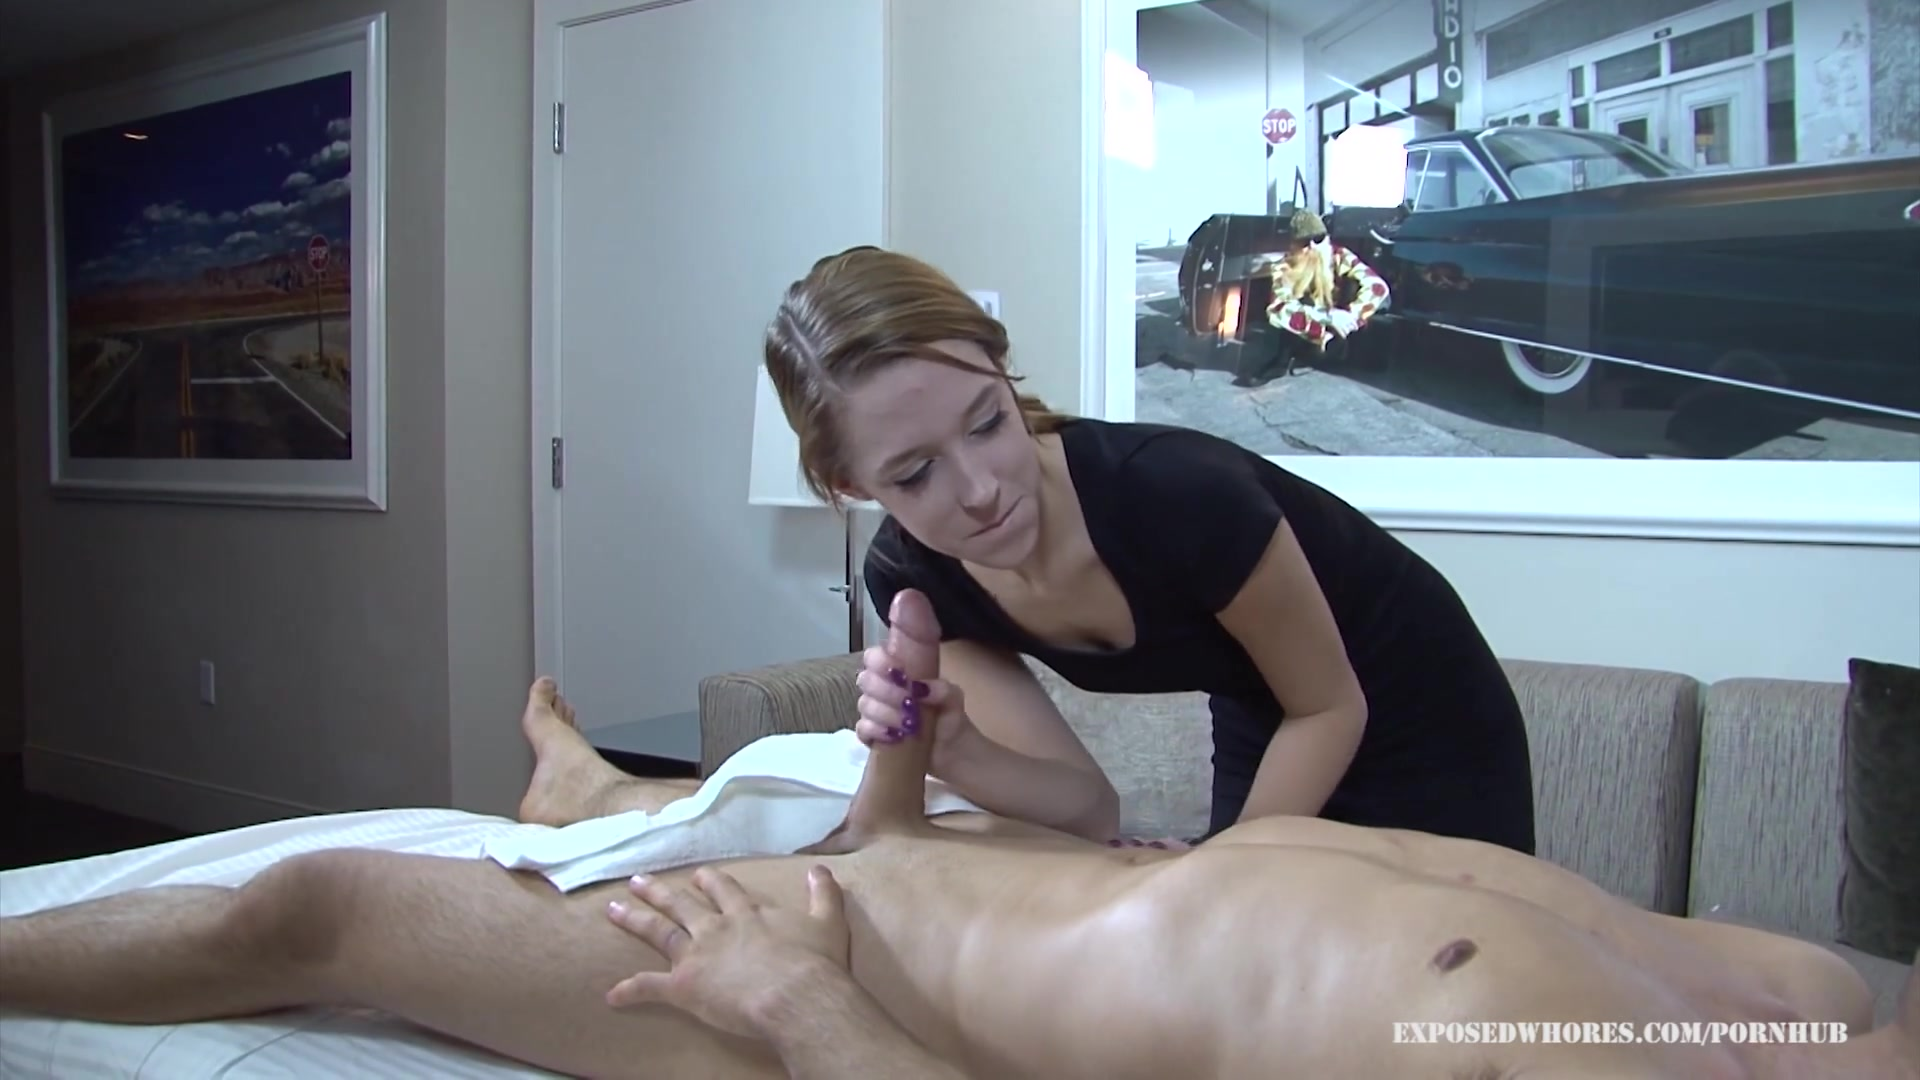 Massage whore lola hunter gets lucky with her client he has a huge cock 7